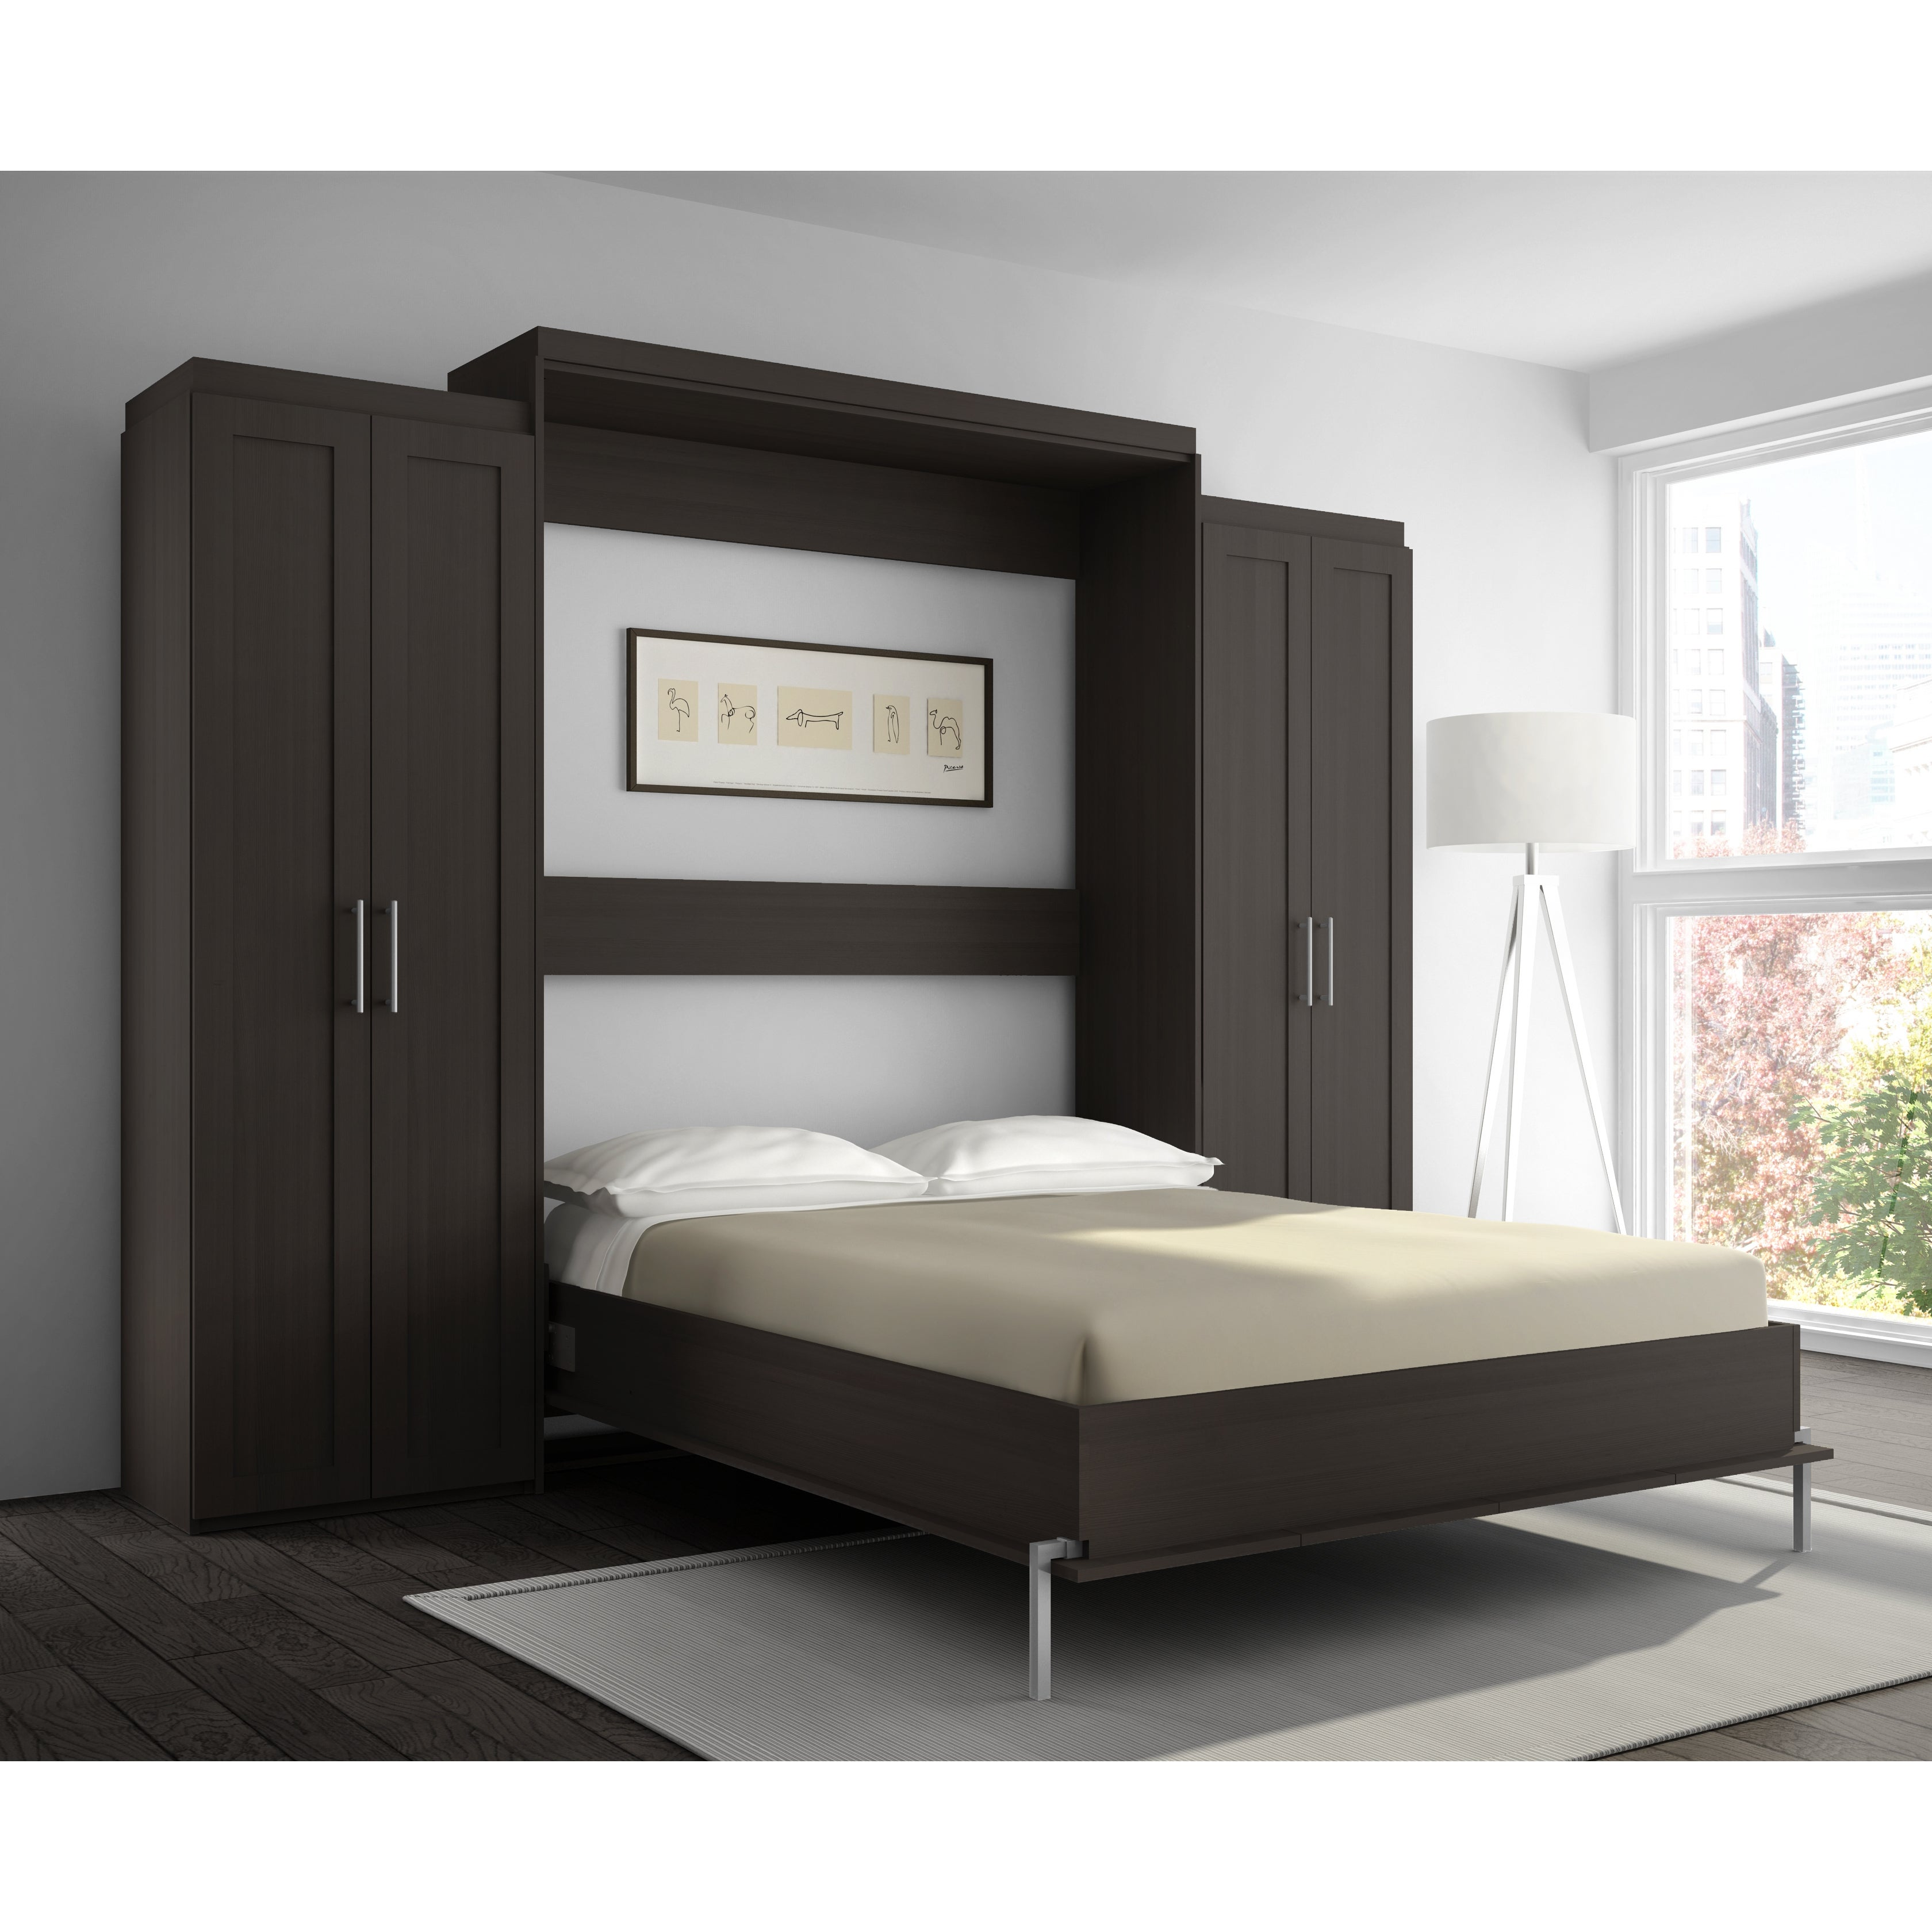 Stellar Home Furniture Shaker Full Wall Bed Ebay